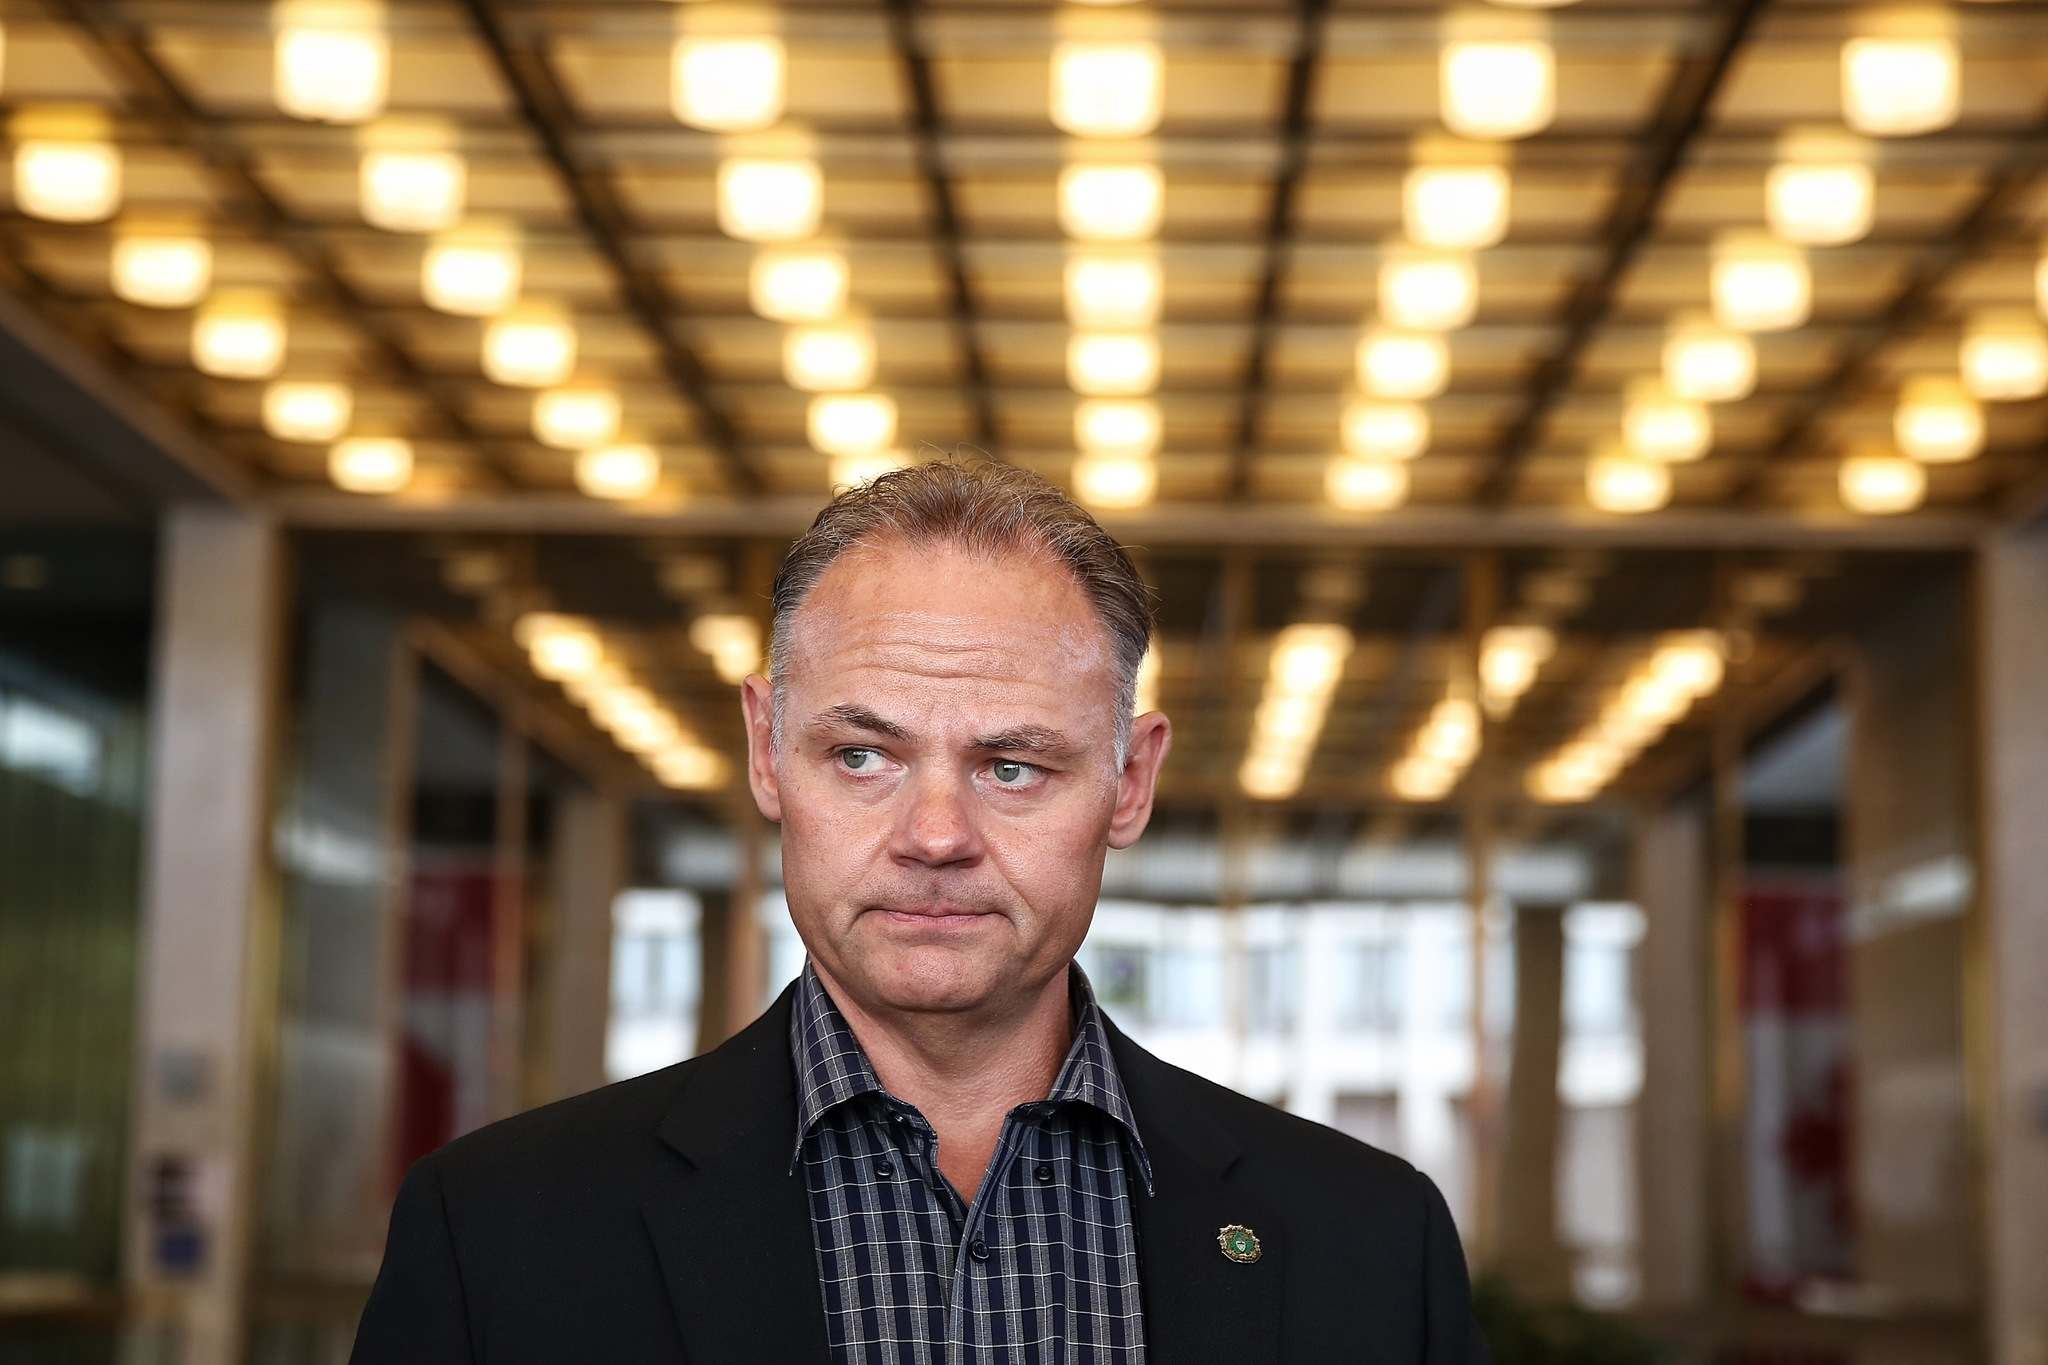 Winnipeg Police Association president Maurice Sabourin provided a written statement to the Free Press in which he took issue with past Free Press reporting on Norman, saying it implied the existence of civil litigation is a sign of guilt.